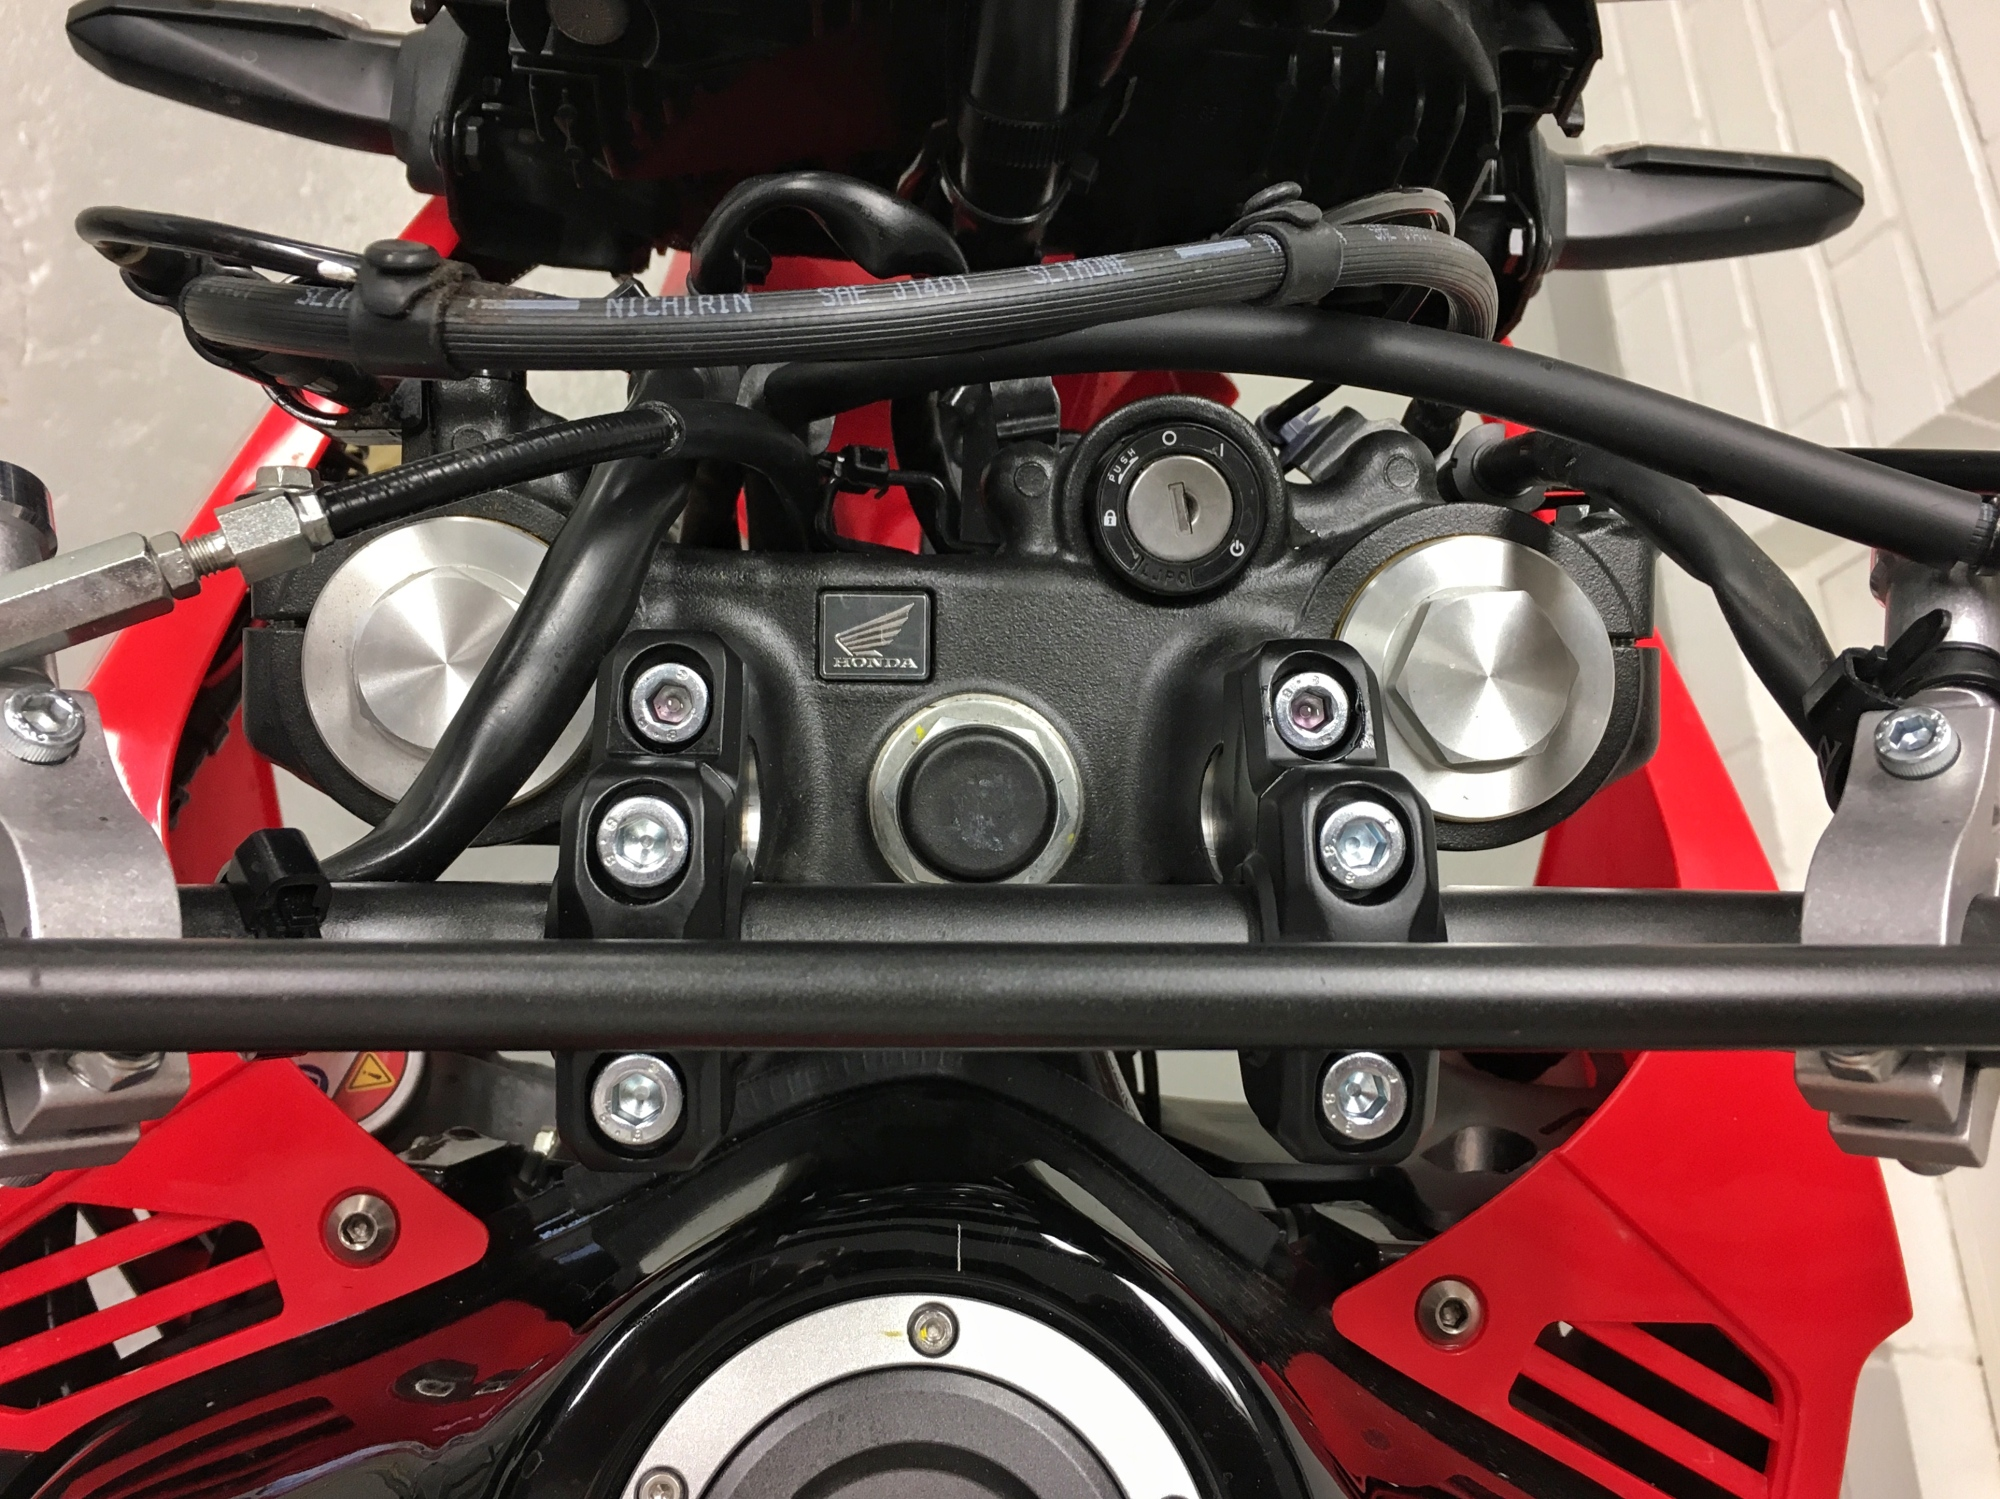 Sw-motech barback risers on Honda CRF 250 Rally